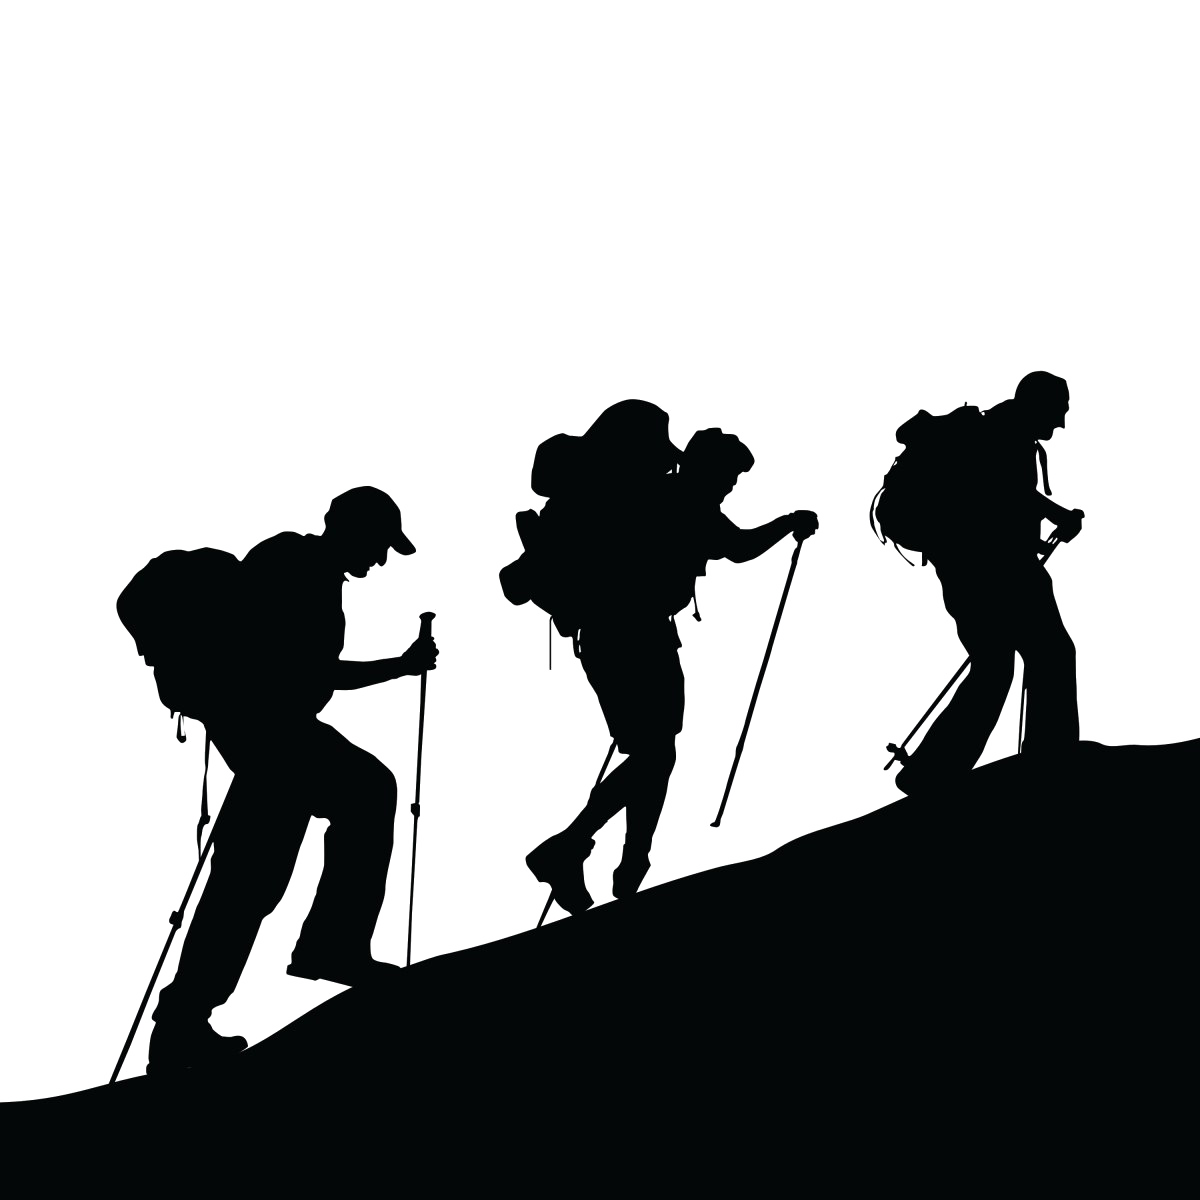 Climbing Silhouette Black Royaltyfree Mountaineering PNG File HD PNG Image